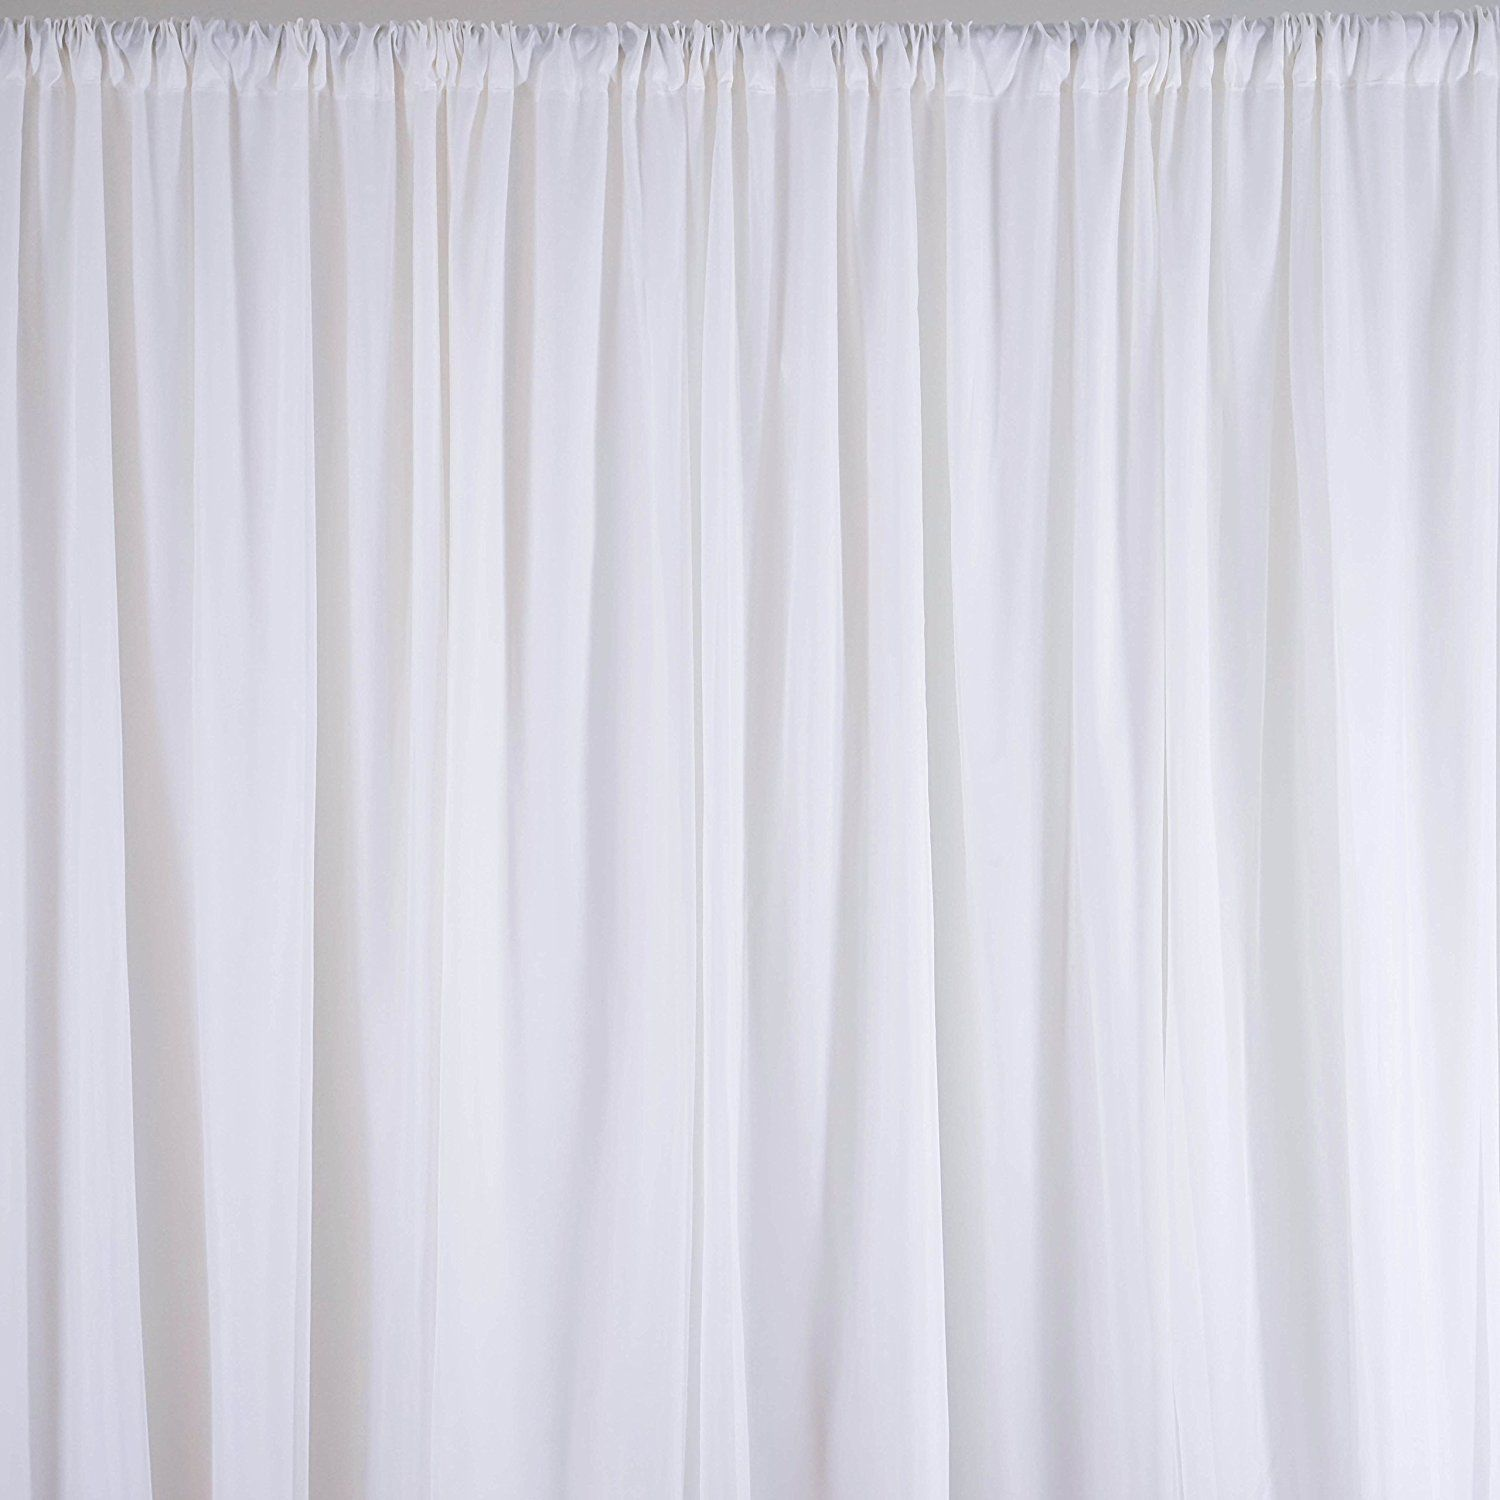 Doolova 10x10 Ft Fabric Backdrop Curtain Background For